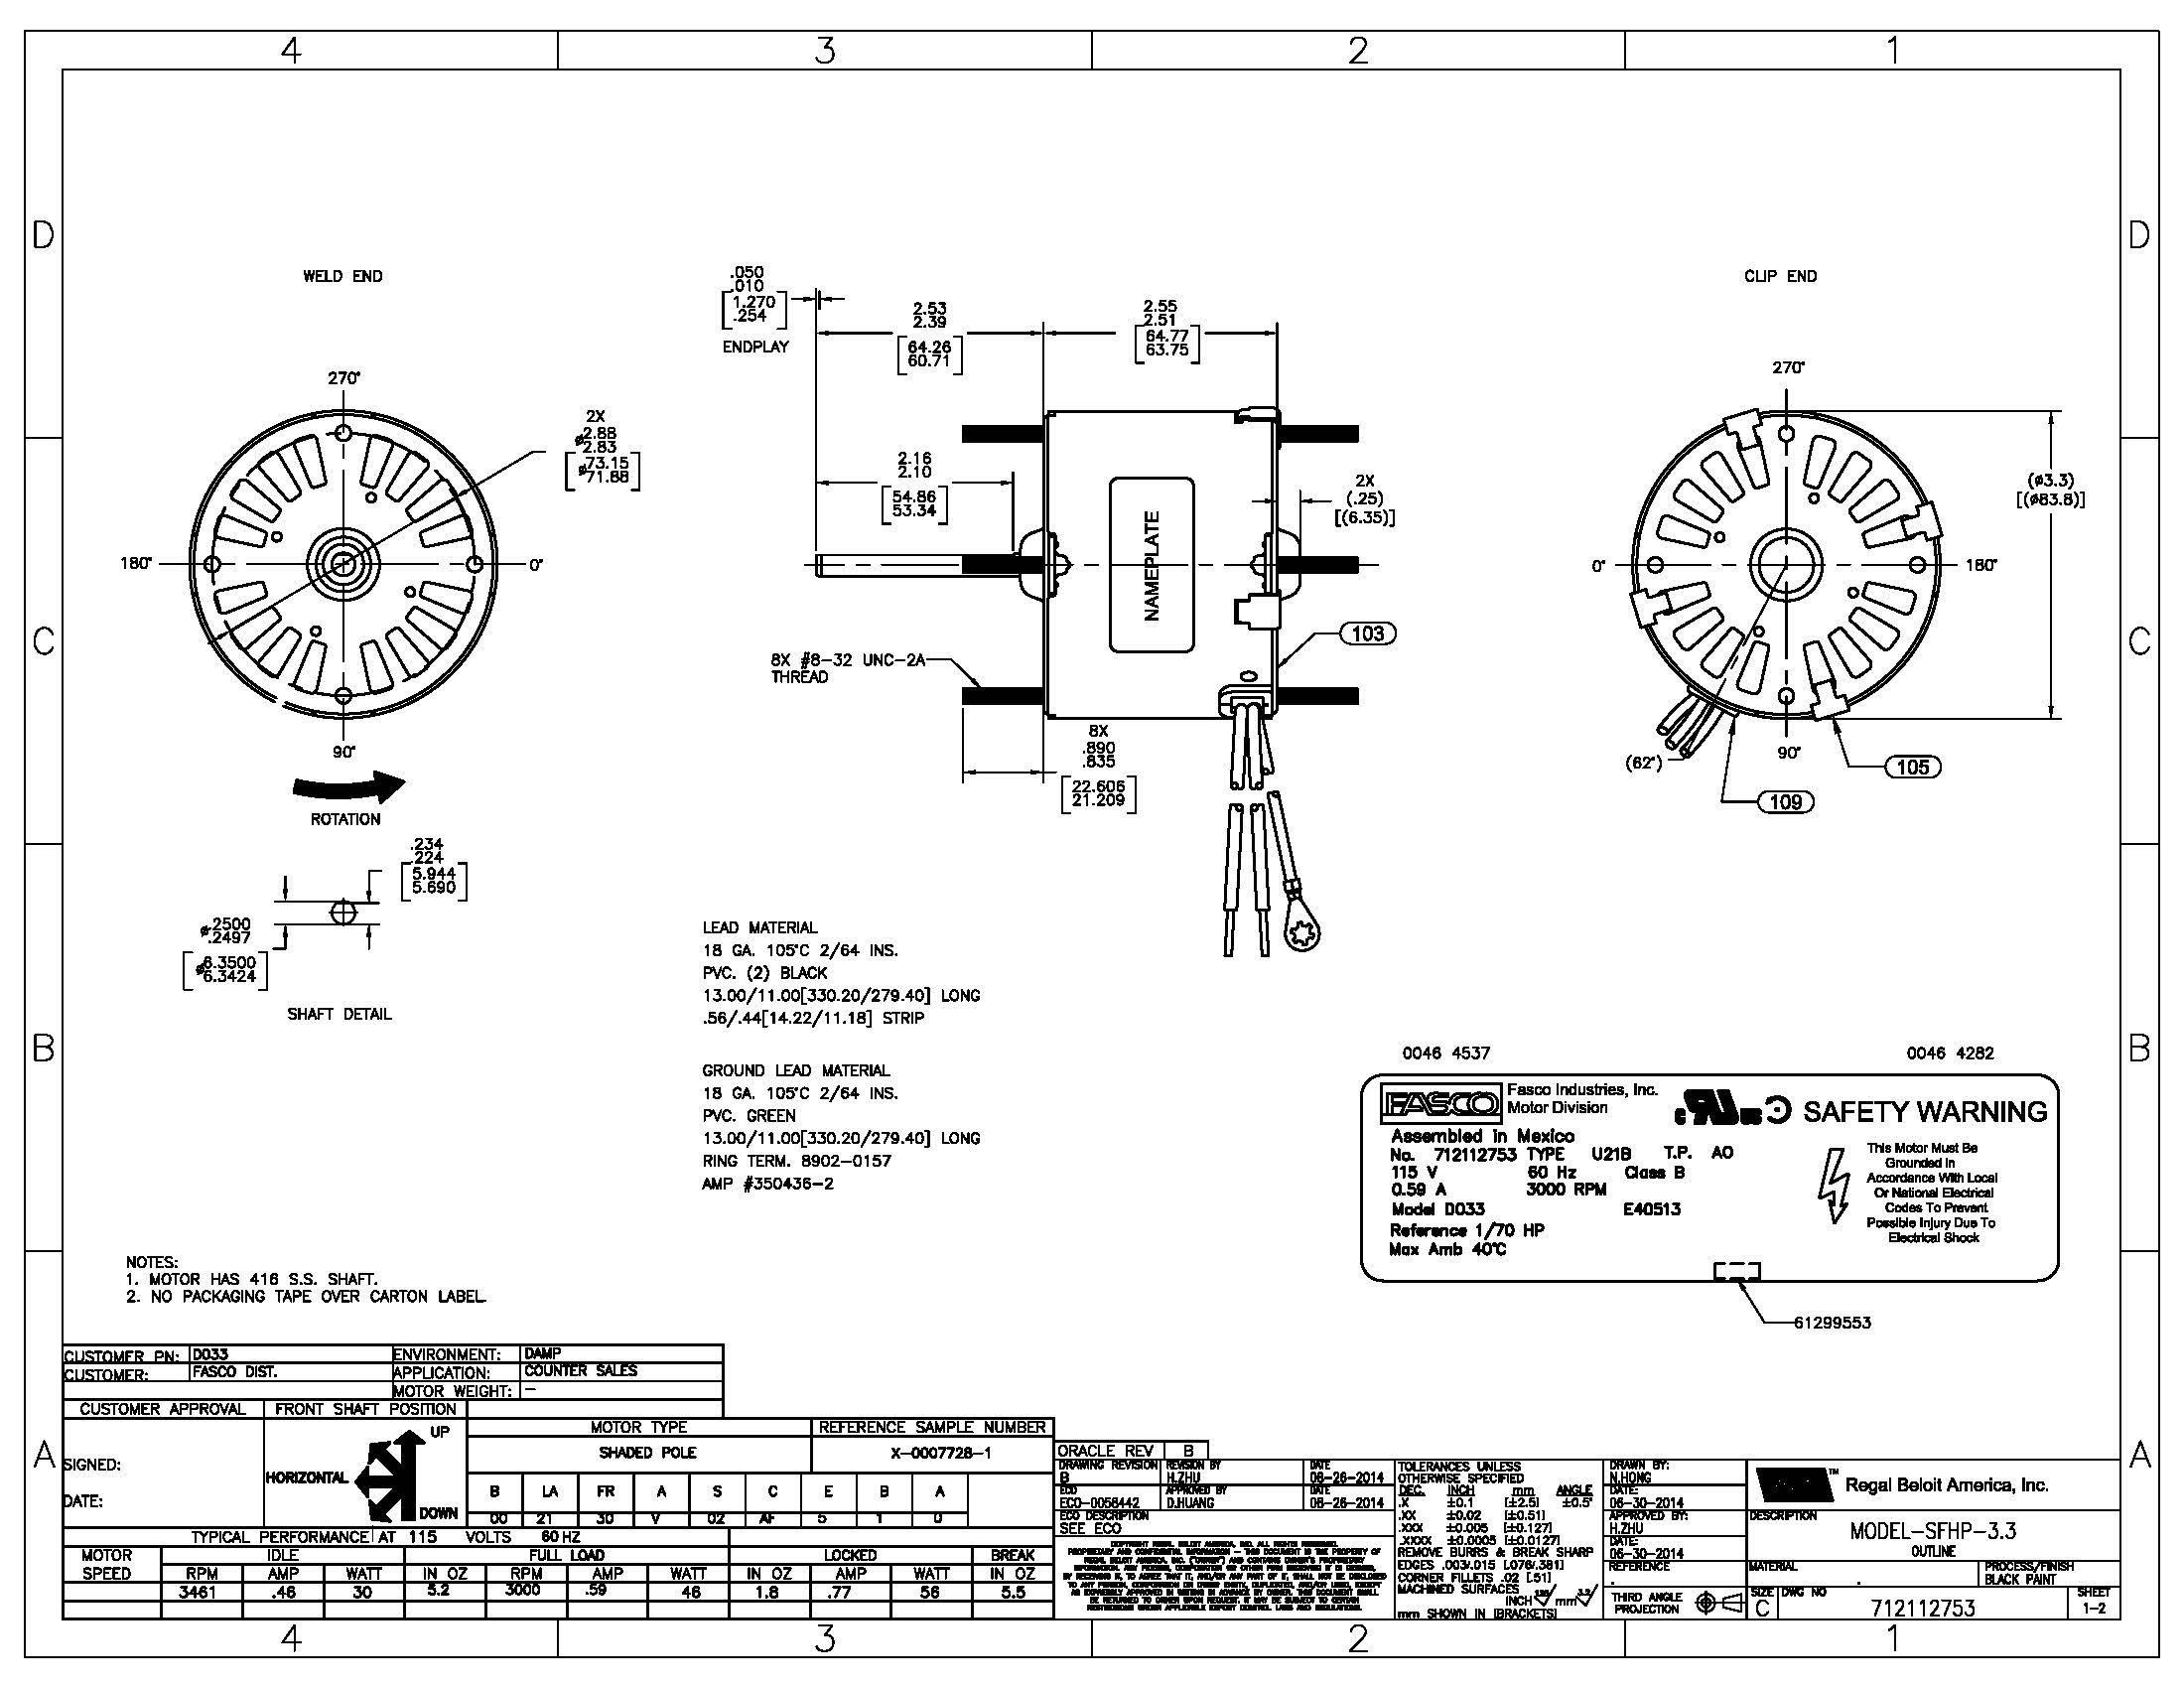 Allis Chalmers Transformer 480 Volts Wiring Diagram Schematic Diagrams Dryer Besides 3 Prong Cord Hand Phase Volt Connections 480v